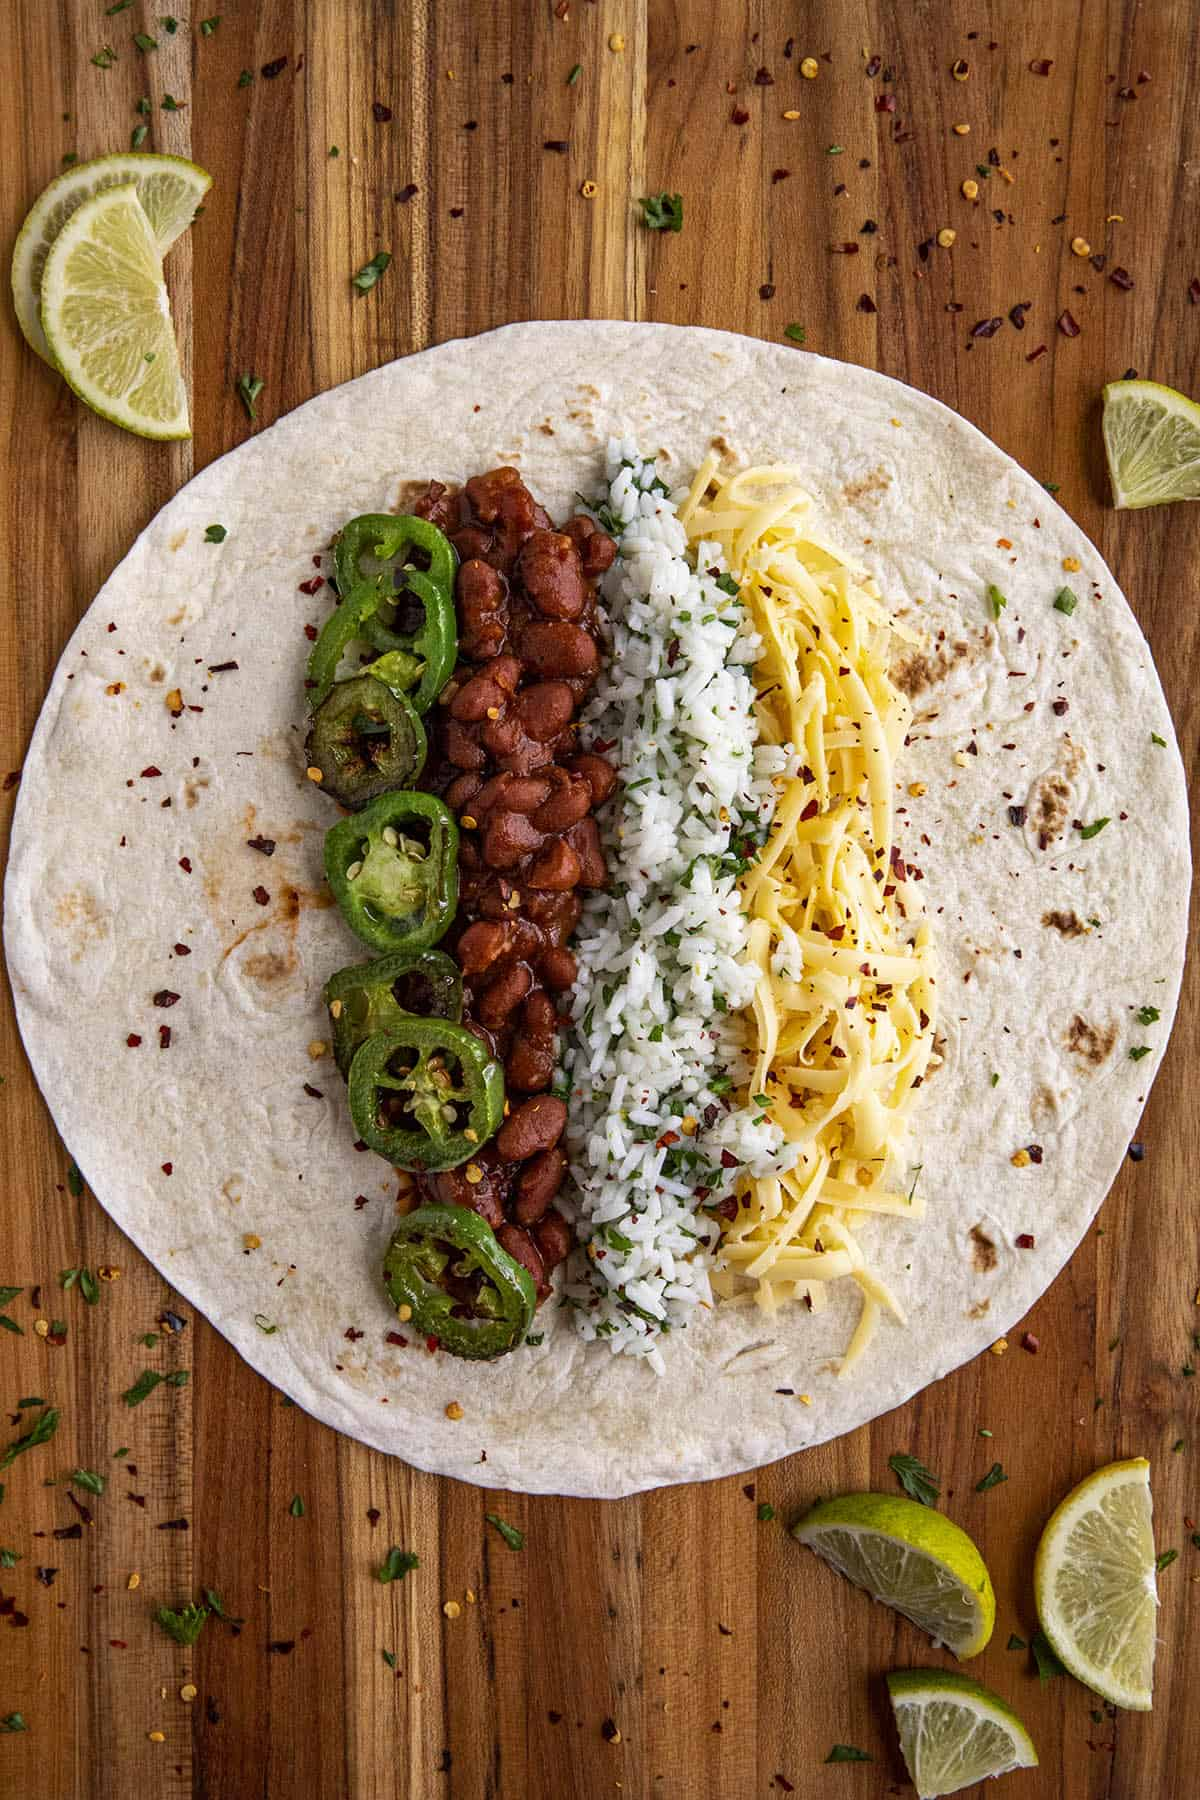 Bean burrito filled with beans, cilaintro-lime rice, cheese and jalapenos, ready to fold